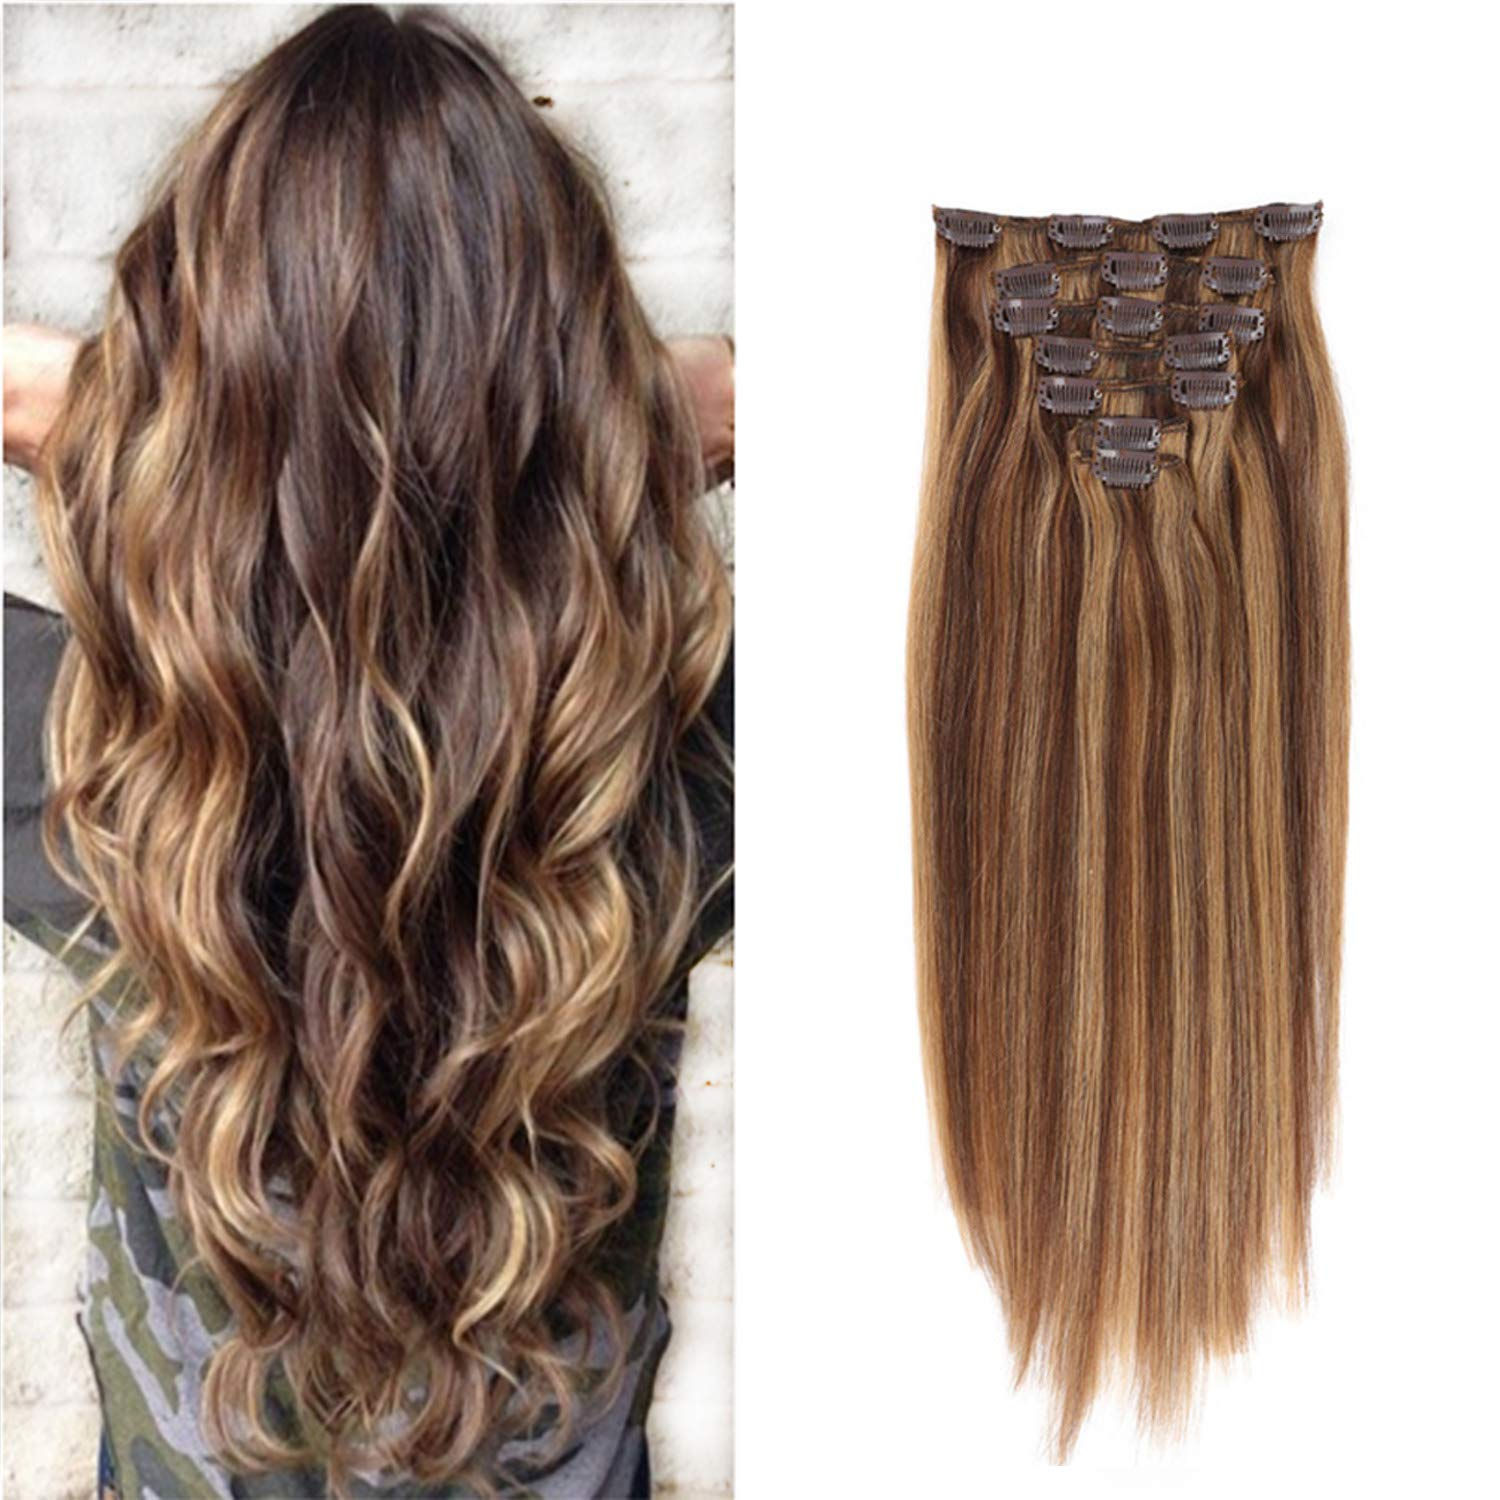 Clip in Human Hair Extensions Silk Straight Human Hair Extensions Clip in 15Inch 70g Piano Color (4/27#)